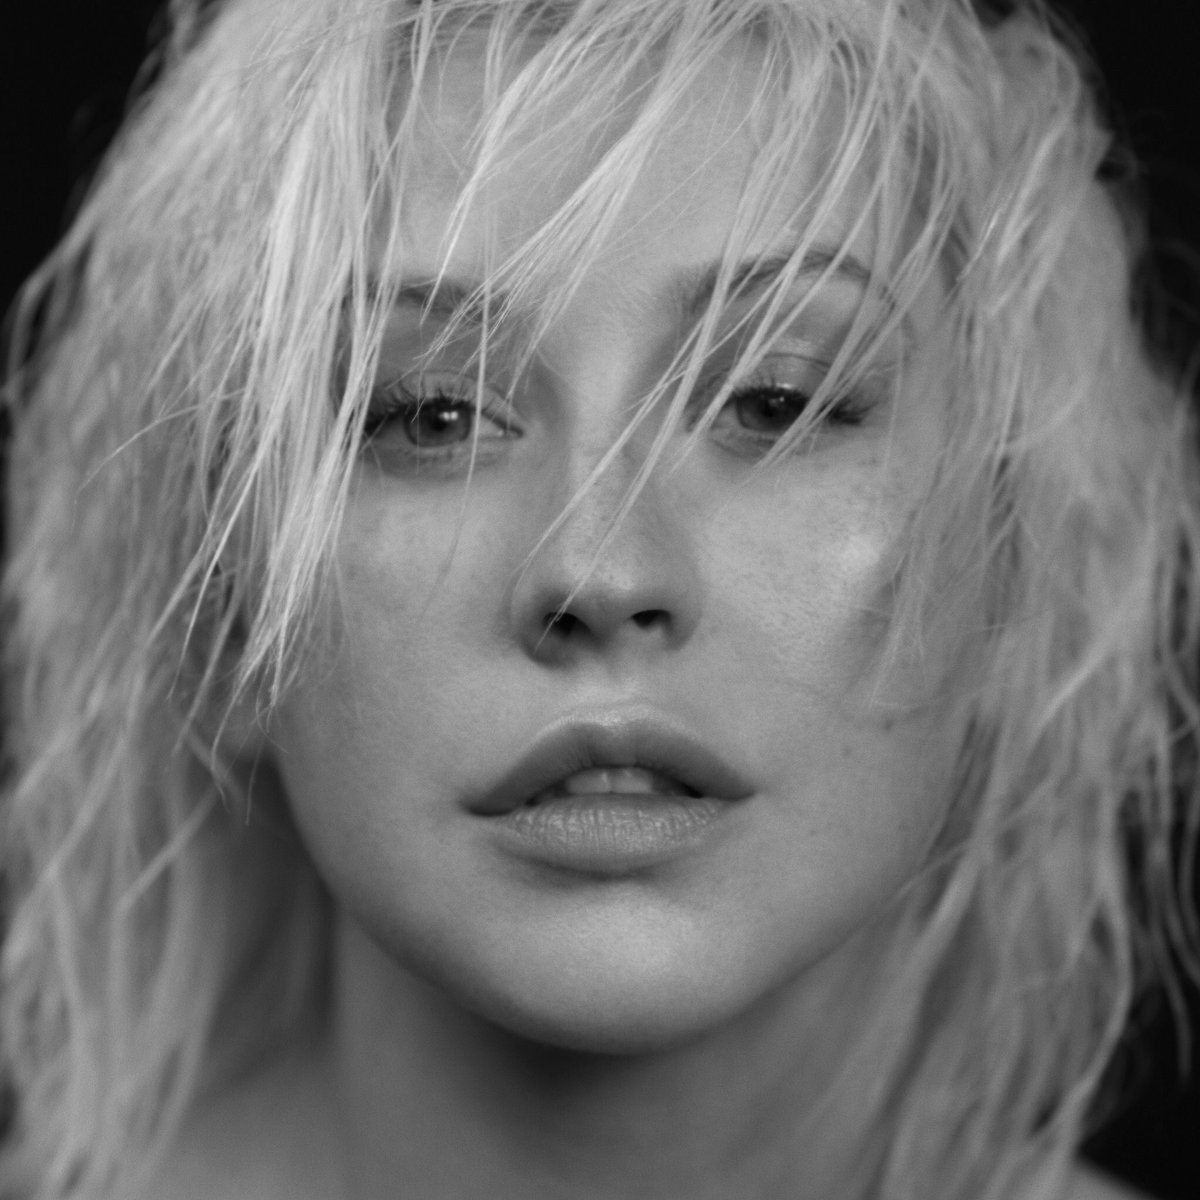 happy birthday to this really really great album💕💕💕 I co wrote and sing on Deserve. LOVE Christina ✨ https://t.co/Mq1Rj05Nl4